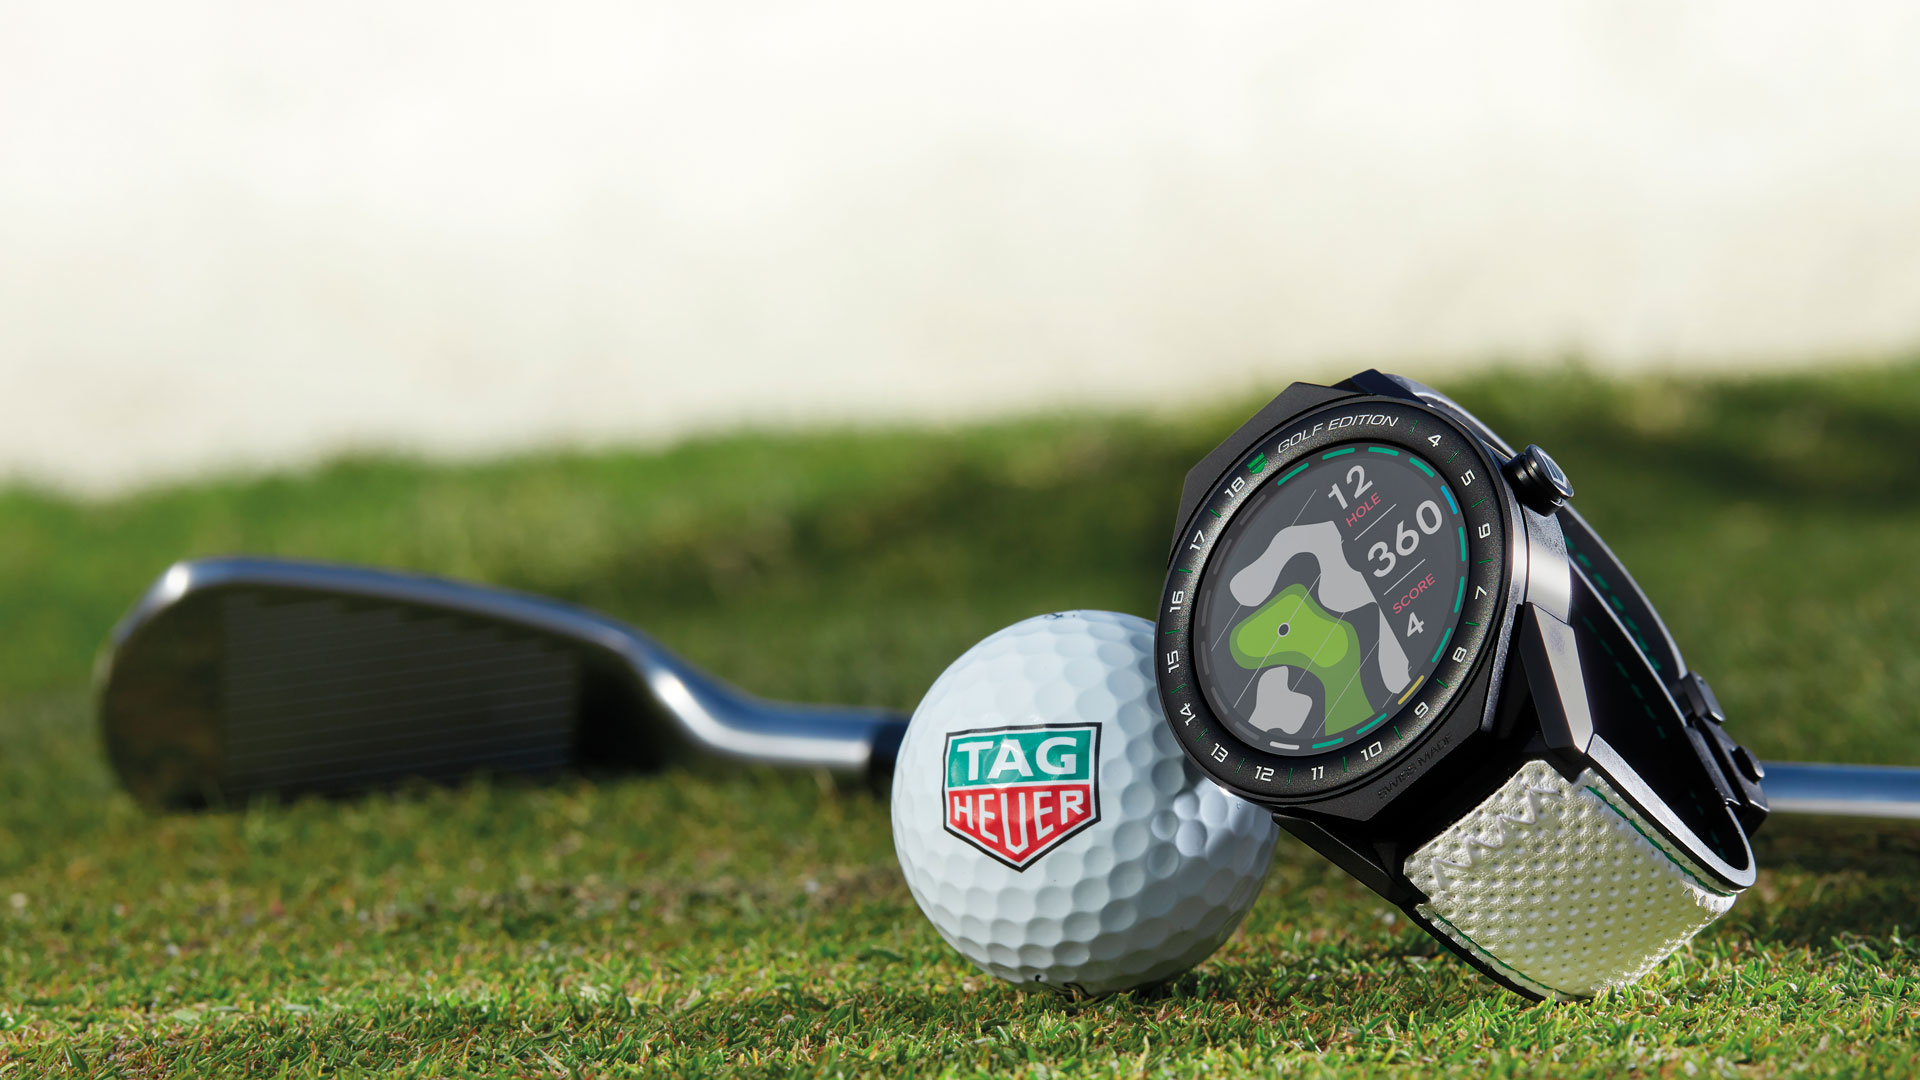 TAG Heuer Watch golf ball and club on green